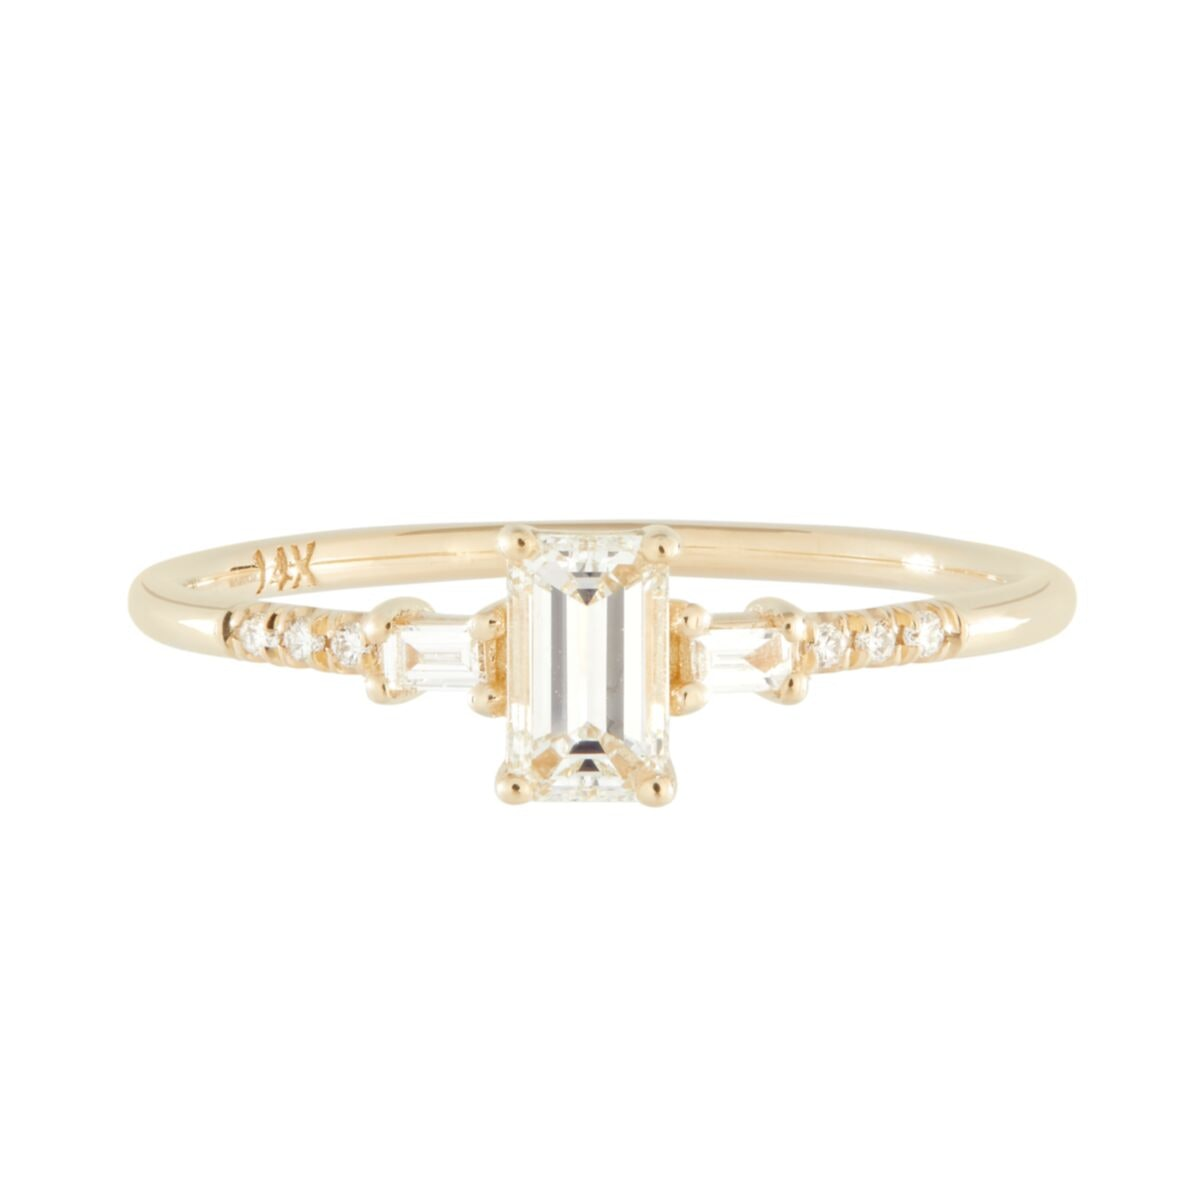 Jennie Kwon Melody ring in 14K yellow gold, available to shop via Catbird.